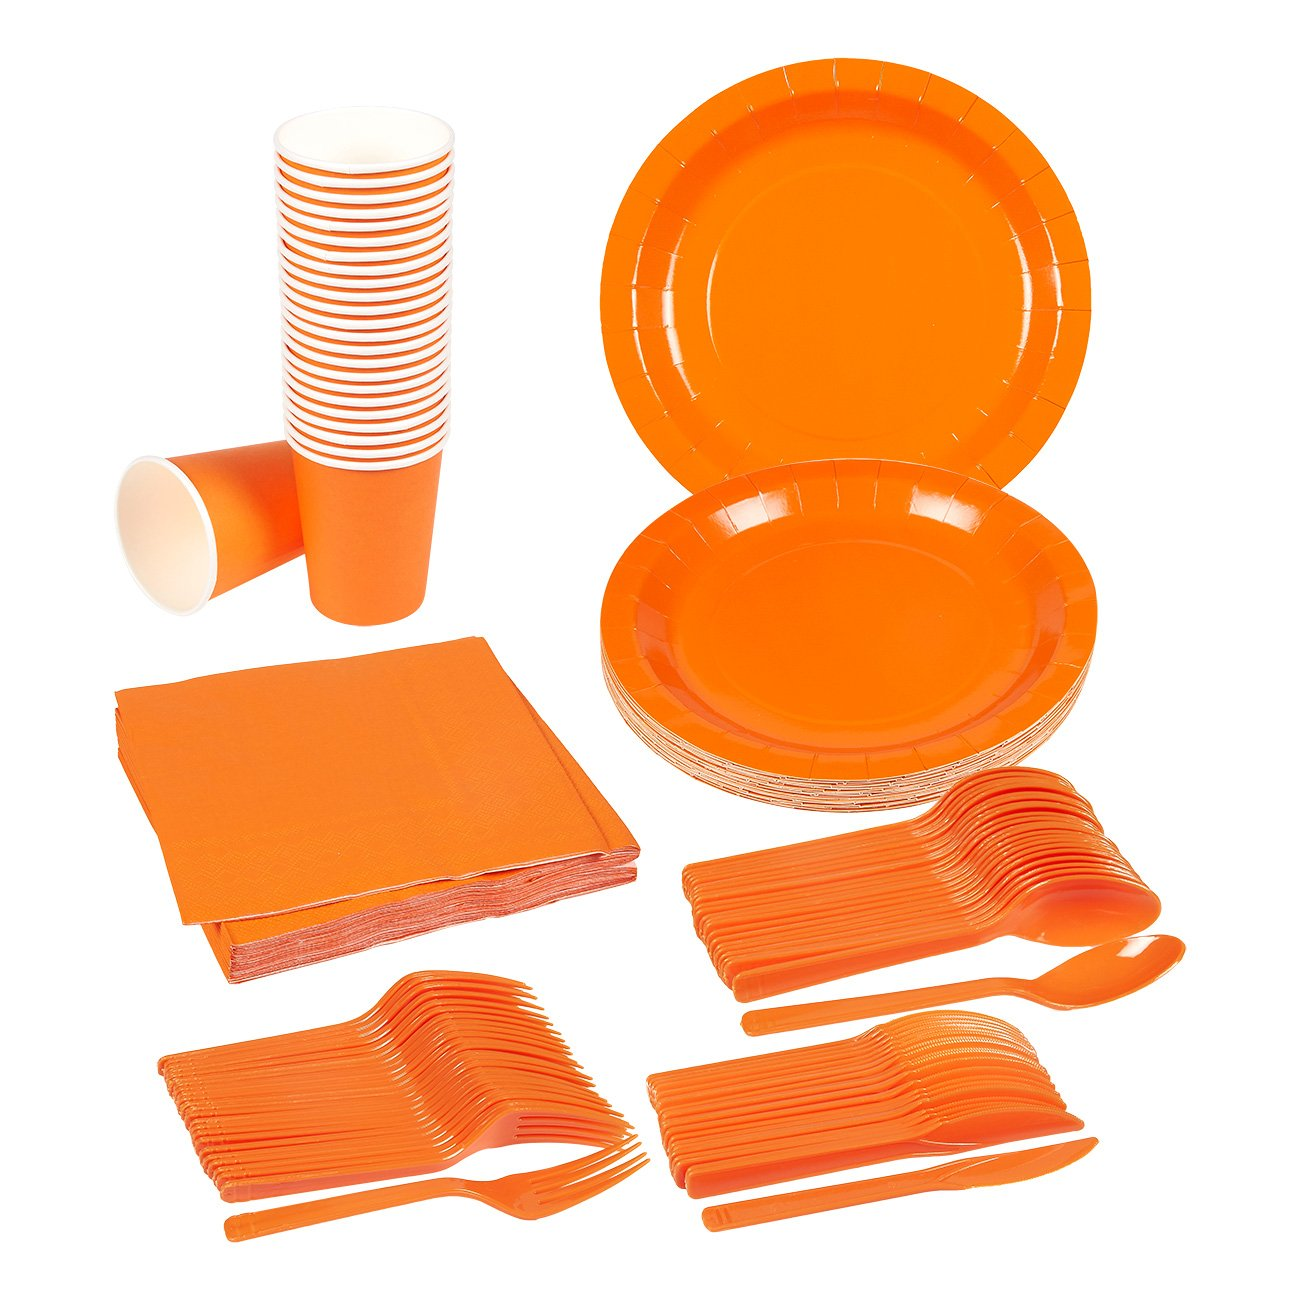 Disposable Dinnerware Set - 24-Set Paper Tableware - Dinner Party Supplies for 24 Guests, Including Knives, Spoons, Forks, Paper Plates, Napkins and Cups, Neon Orange